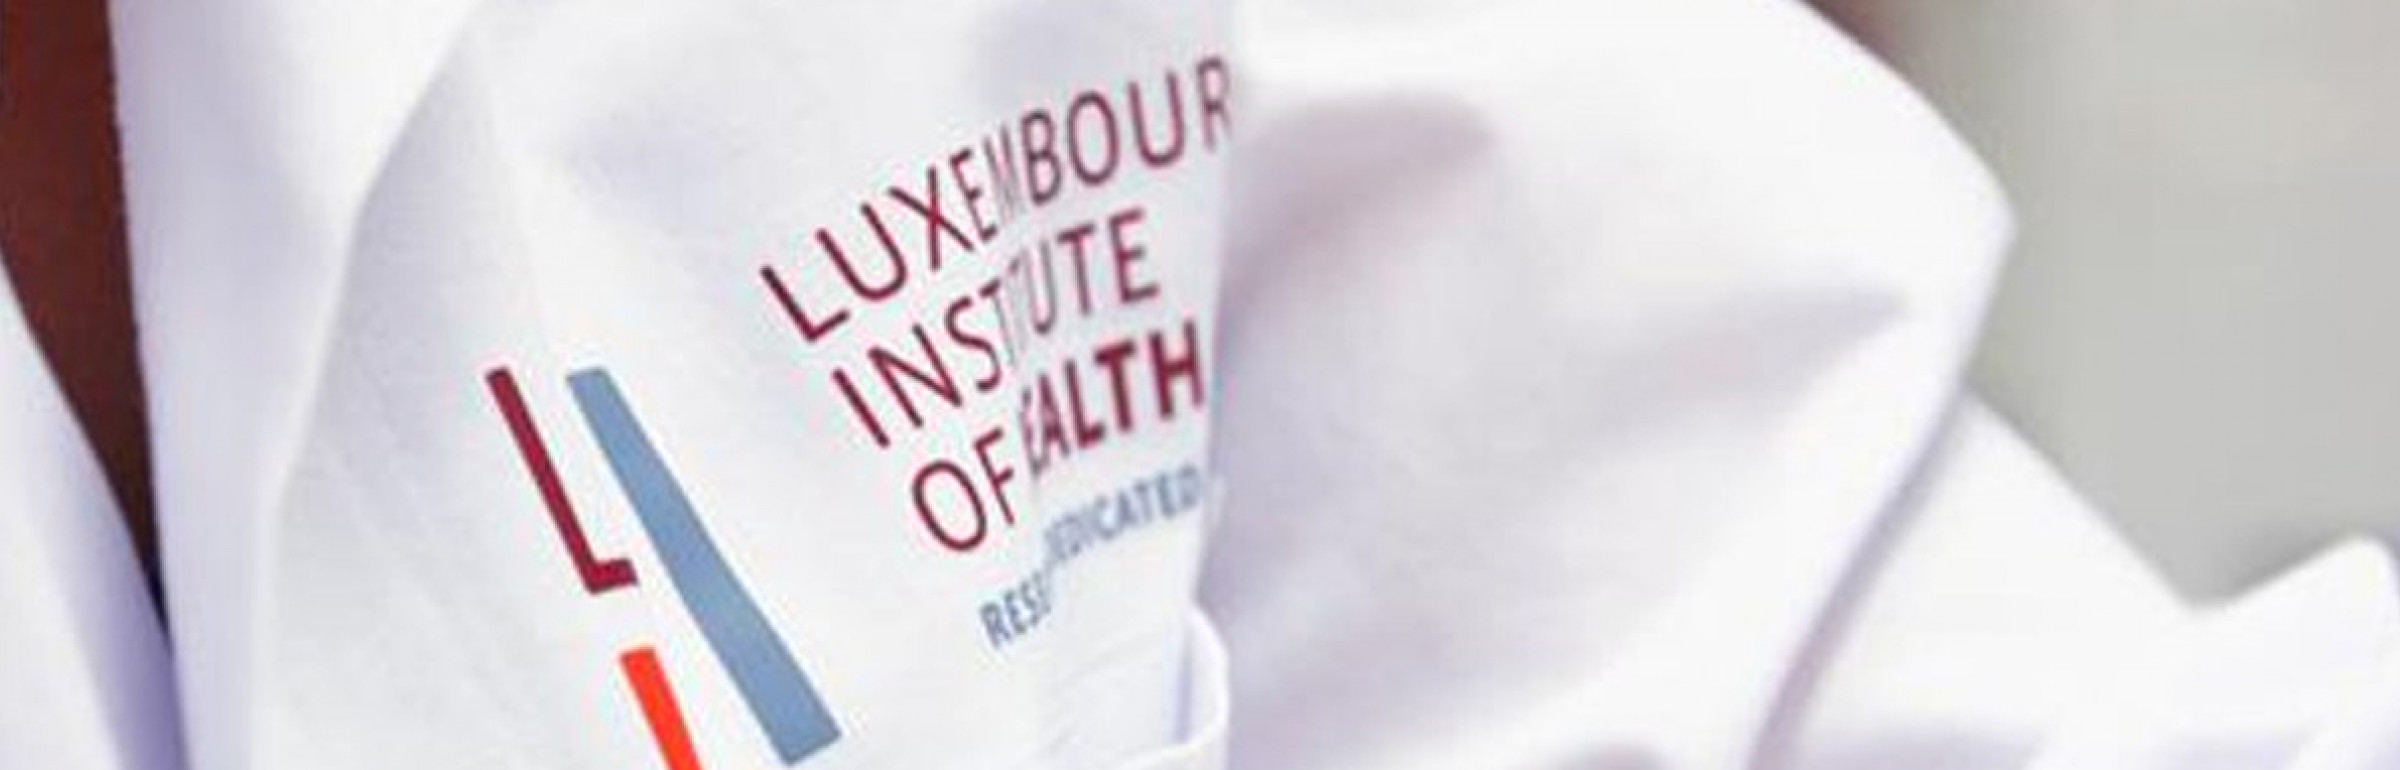 Banner LIH - Luxembourg Institute of Health